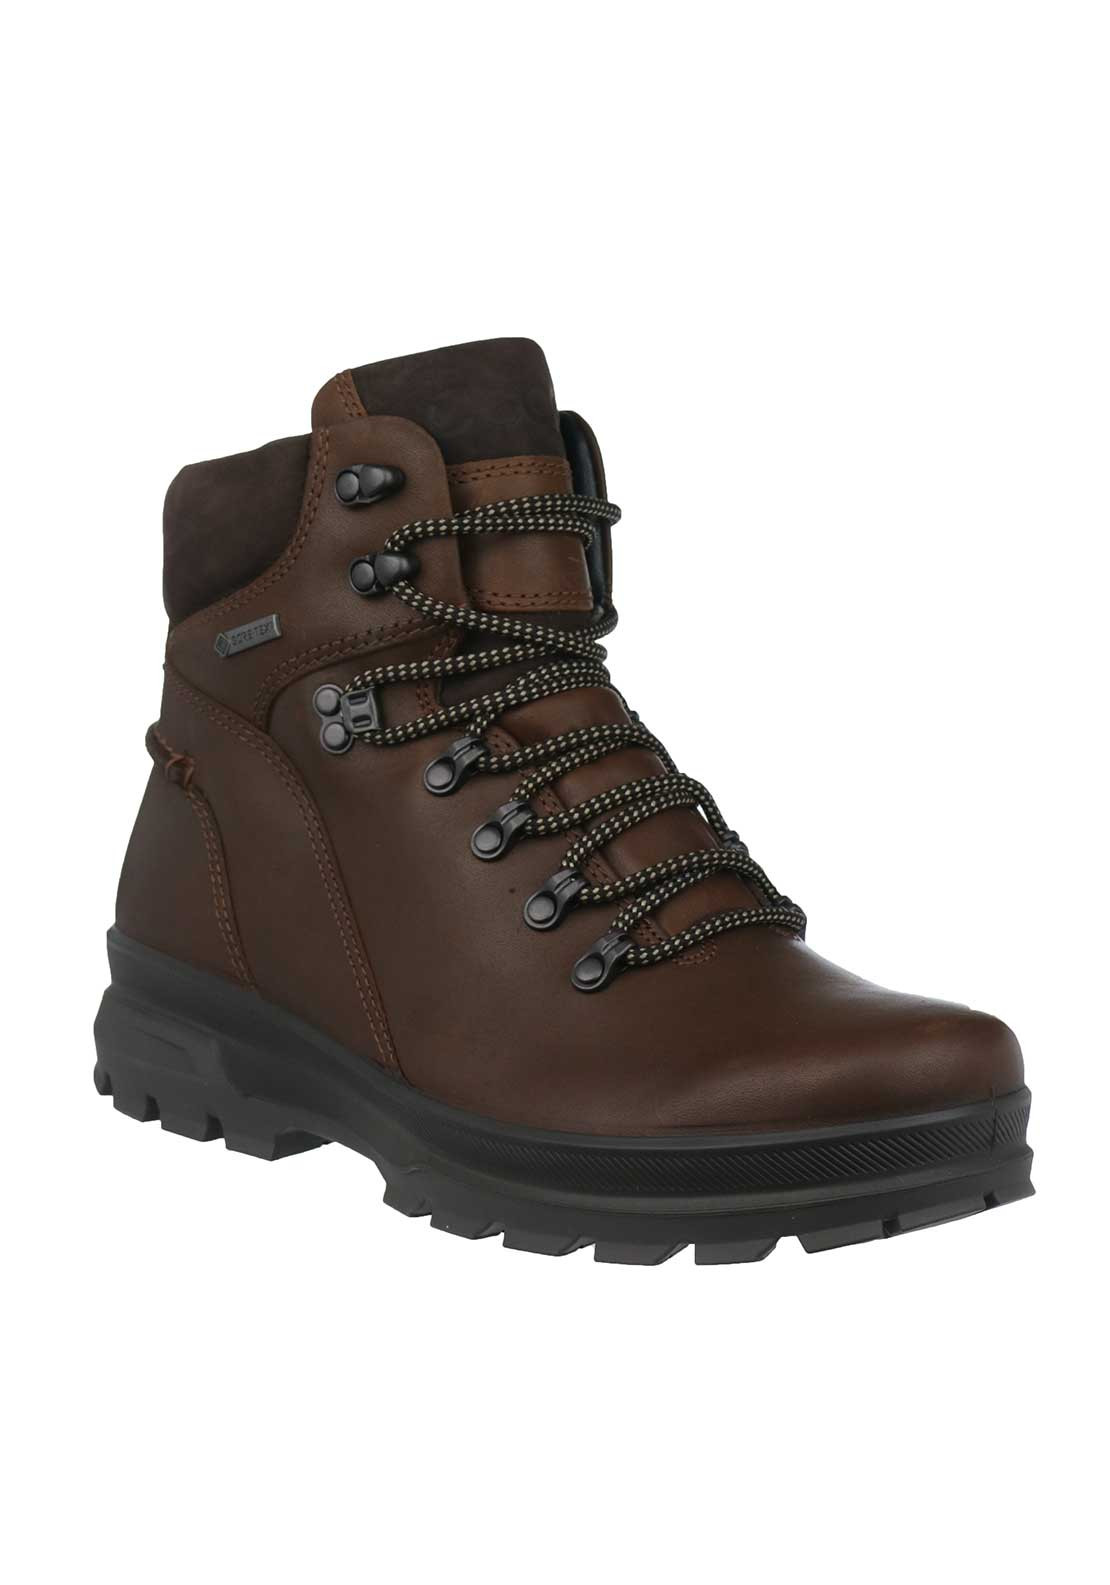 Ecco Mens Leather Rugged Track Boots, Brown | McElhinneys